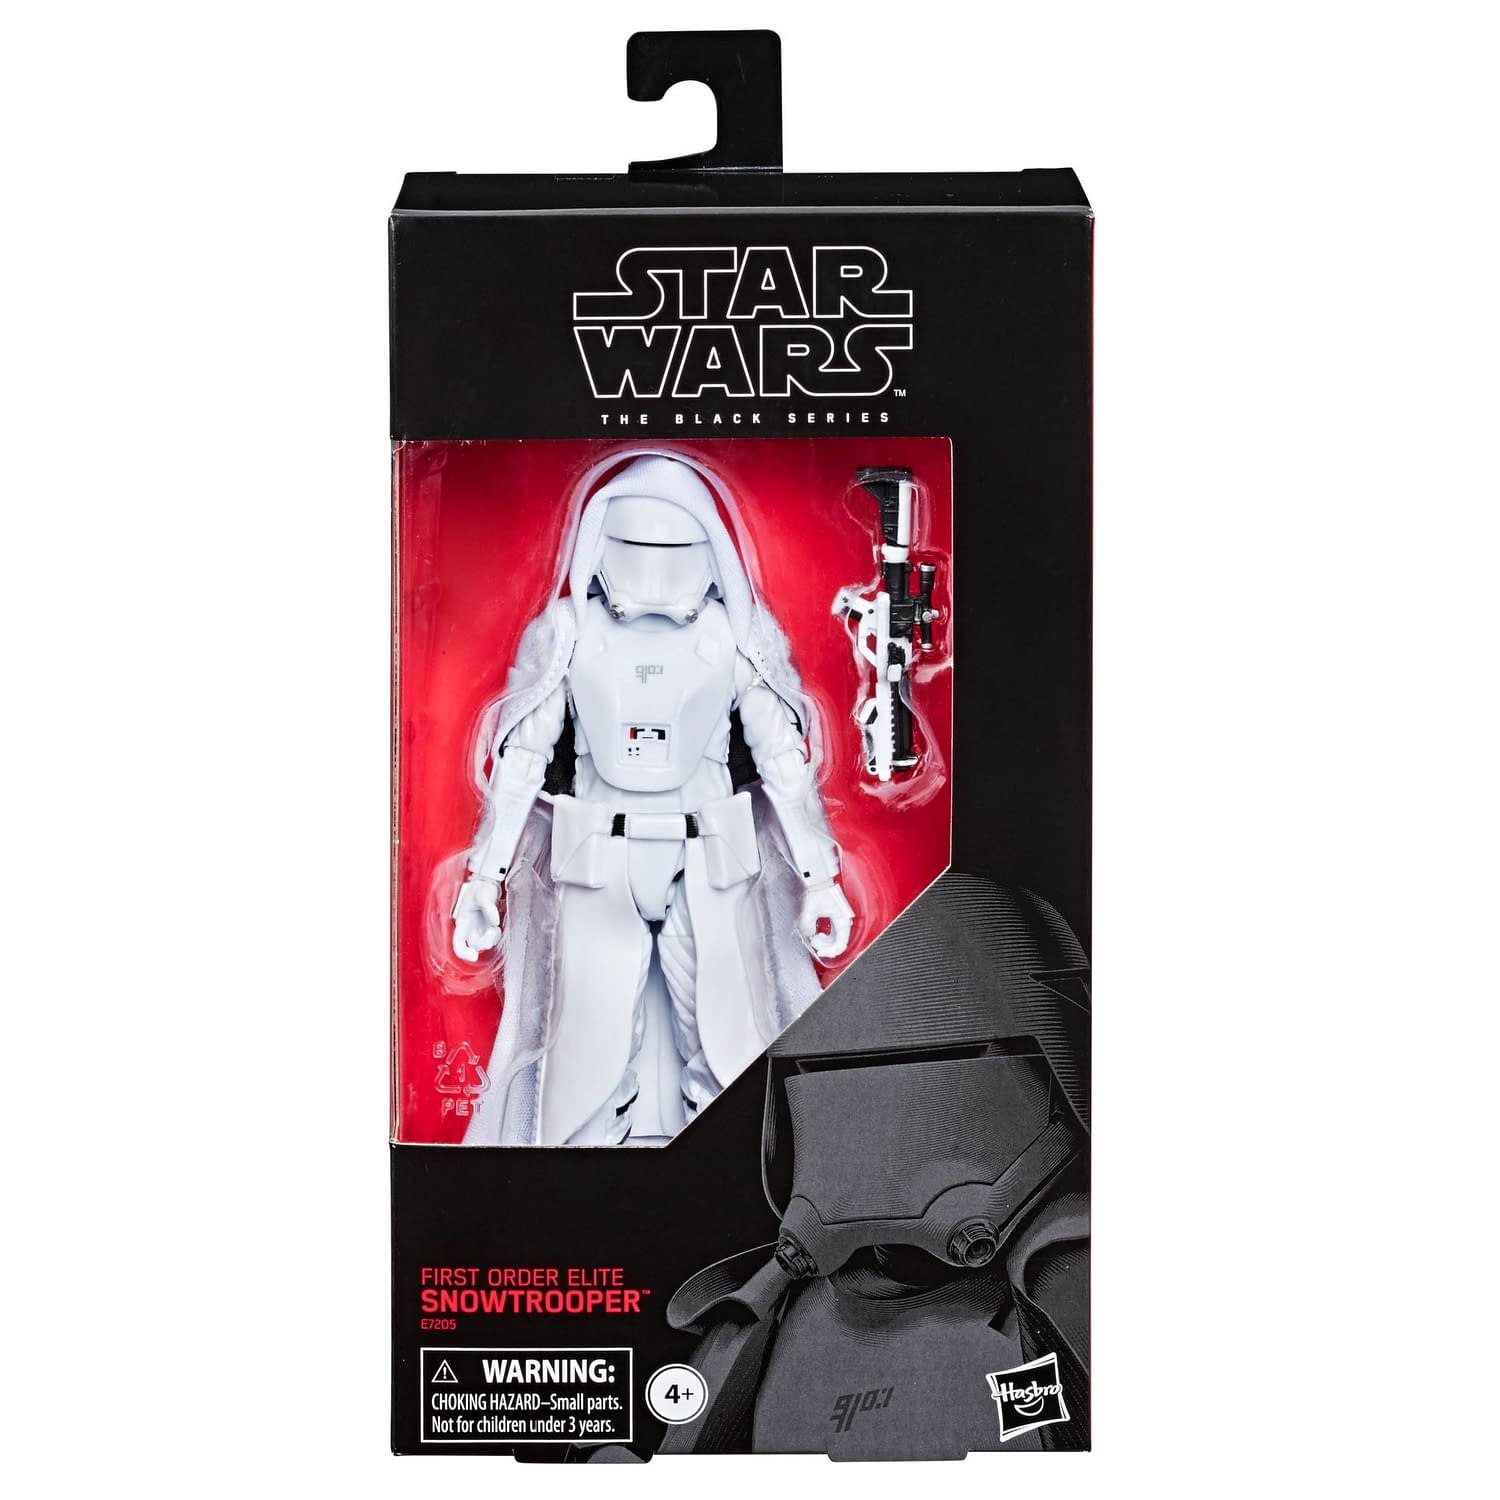 New Stormtroopers Join The Ranks for Triple Force Friday